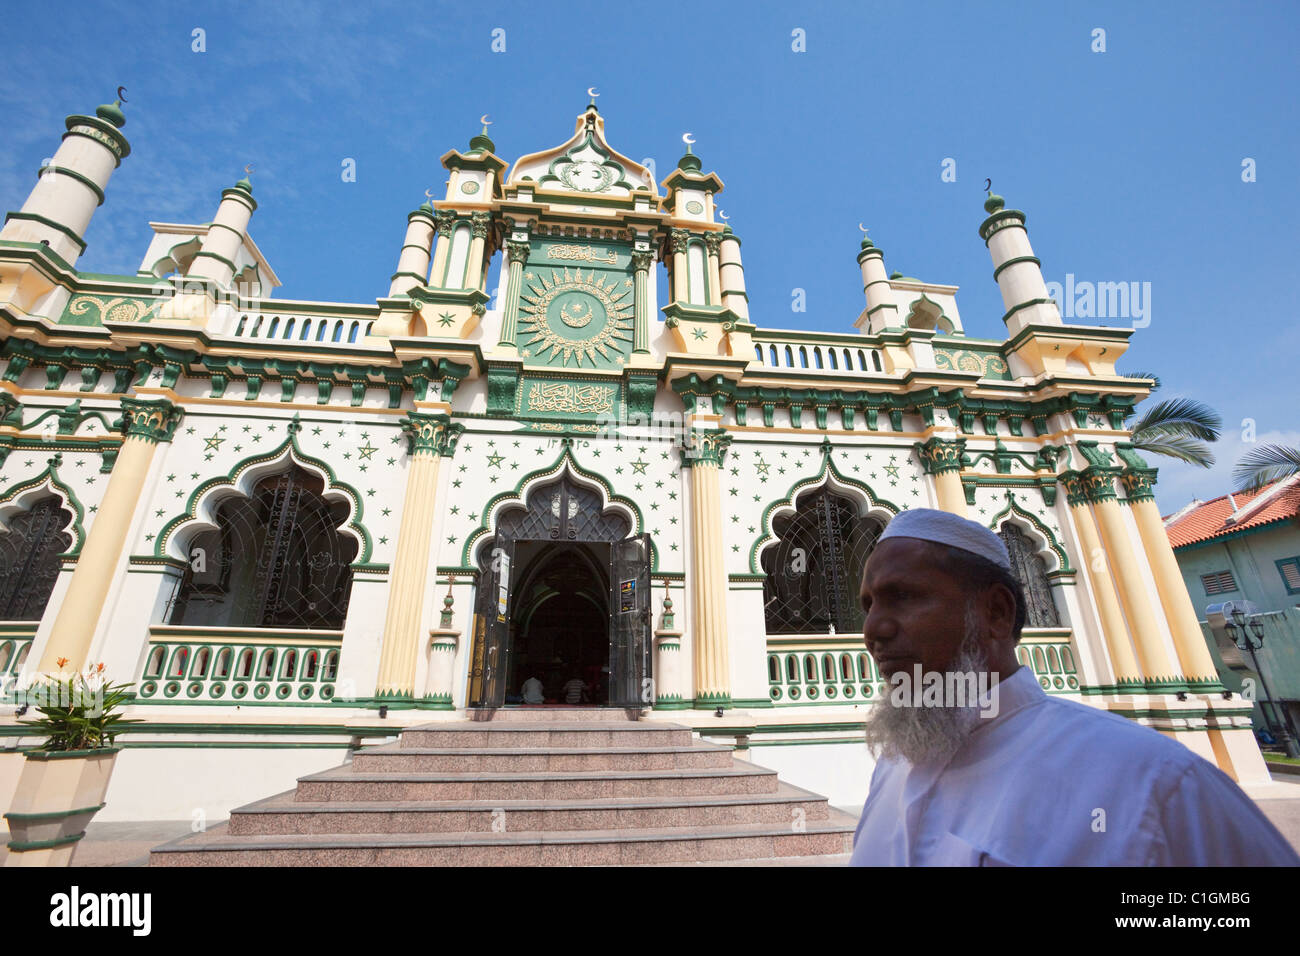 Muslim man and islamic architecture of the Abdul Gaffoor Mosque.  Little India, Singapore - Stock Image